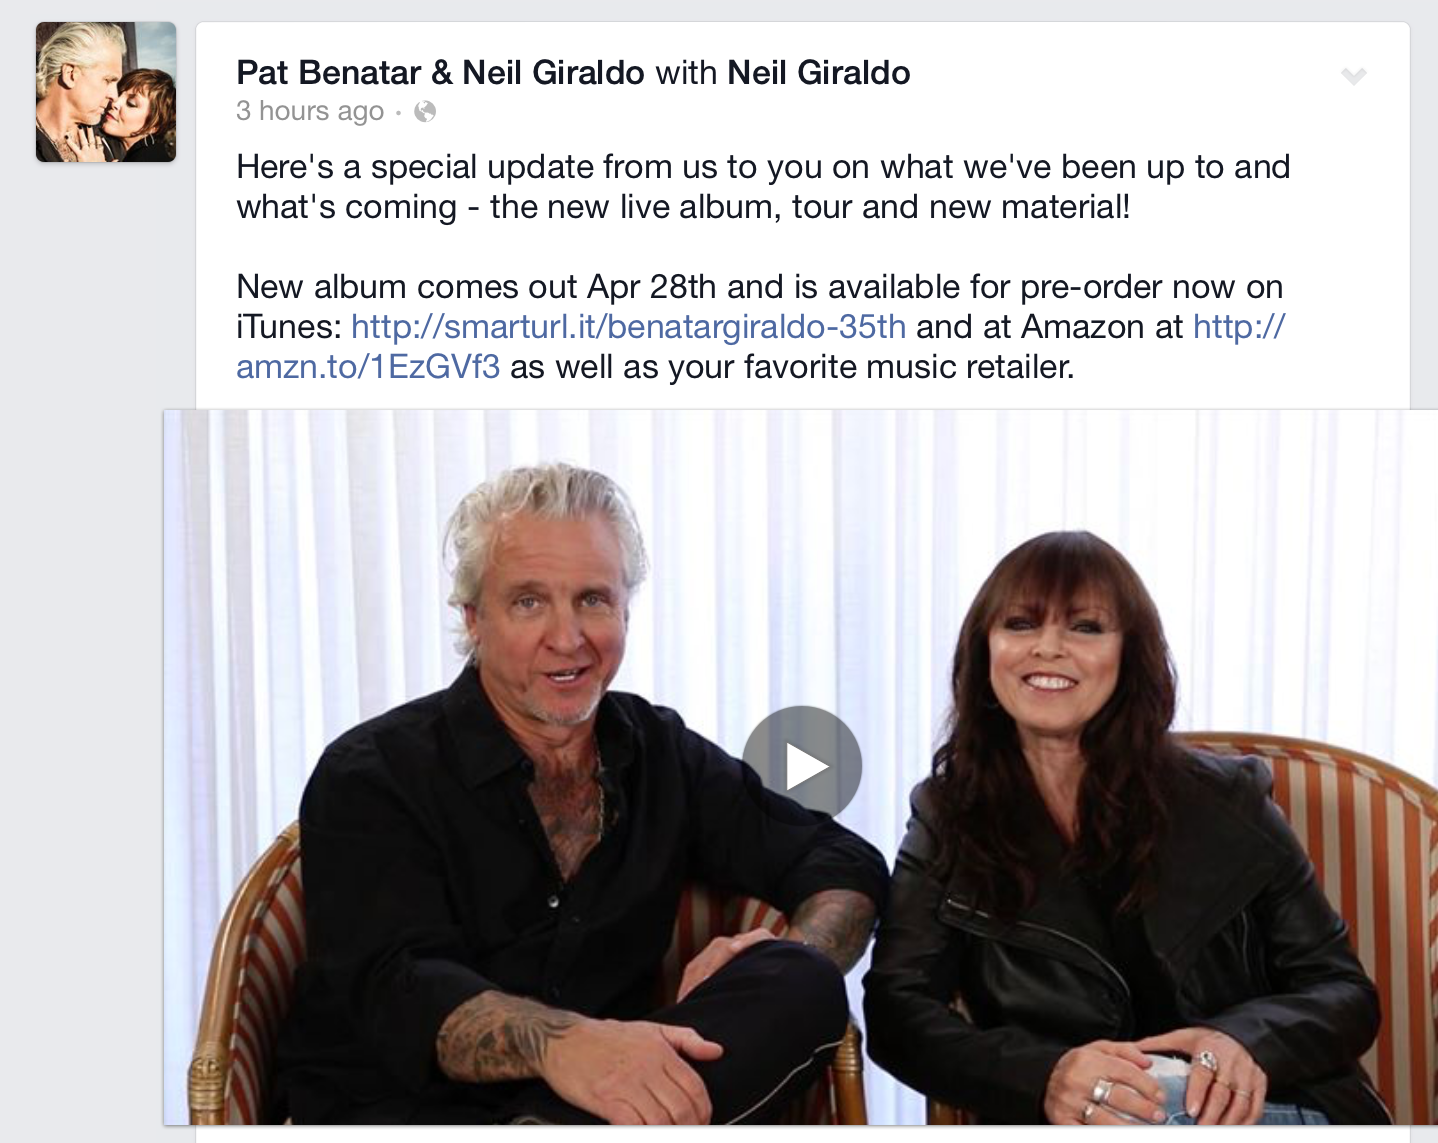 Pat Benatar / Neil Giraldo Fan Message / Update on New Live Album, Tour, and New Material!